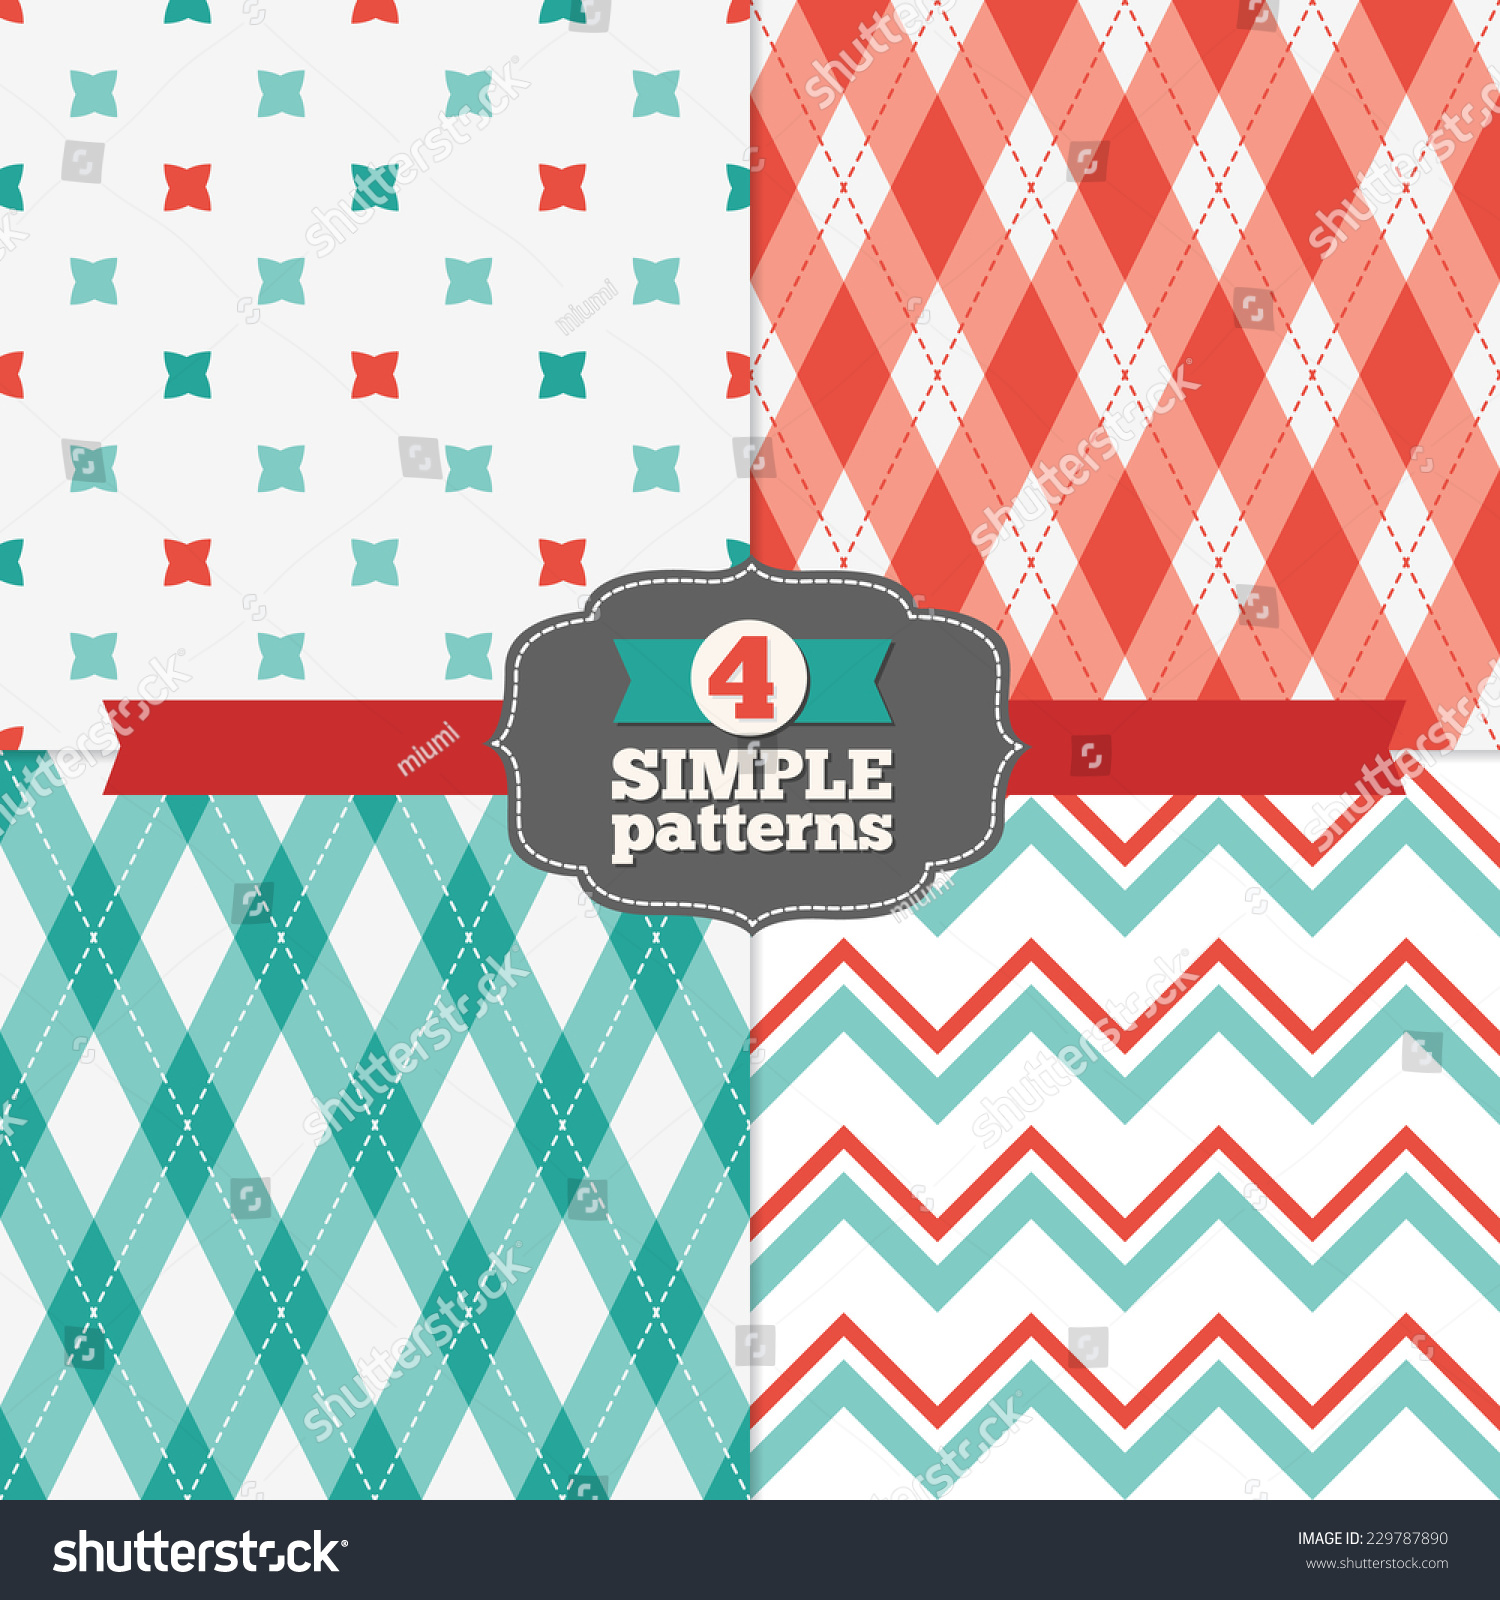 Pics photos merry christmas argyle twitter backgrounds - Set Of Crosses Chevron And Argyle Holiday Patterns In Red Light Red Teal